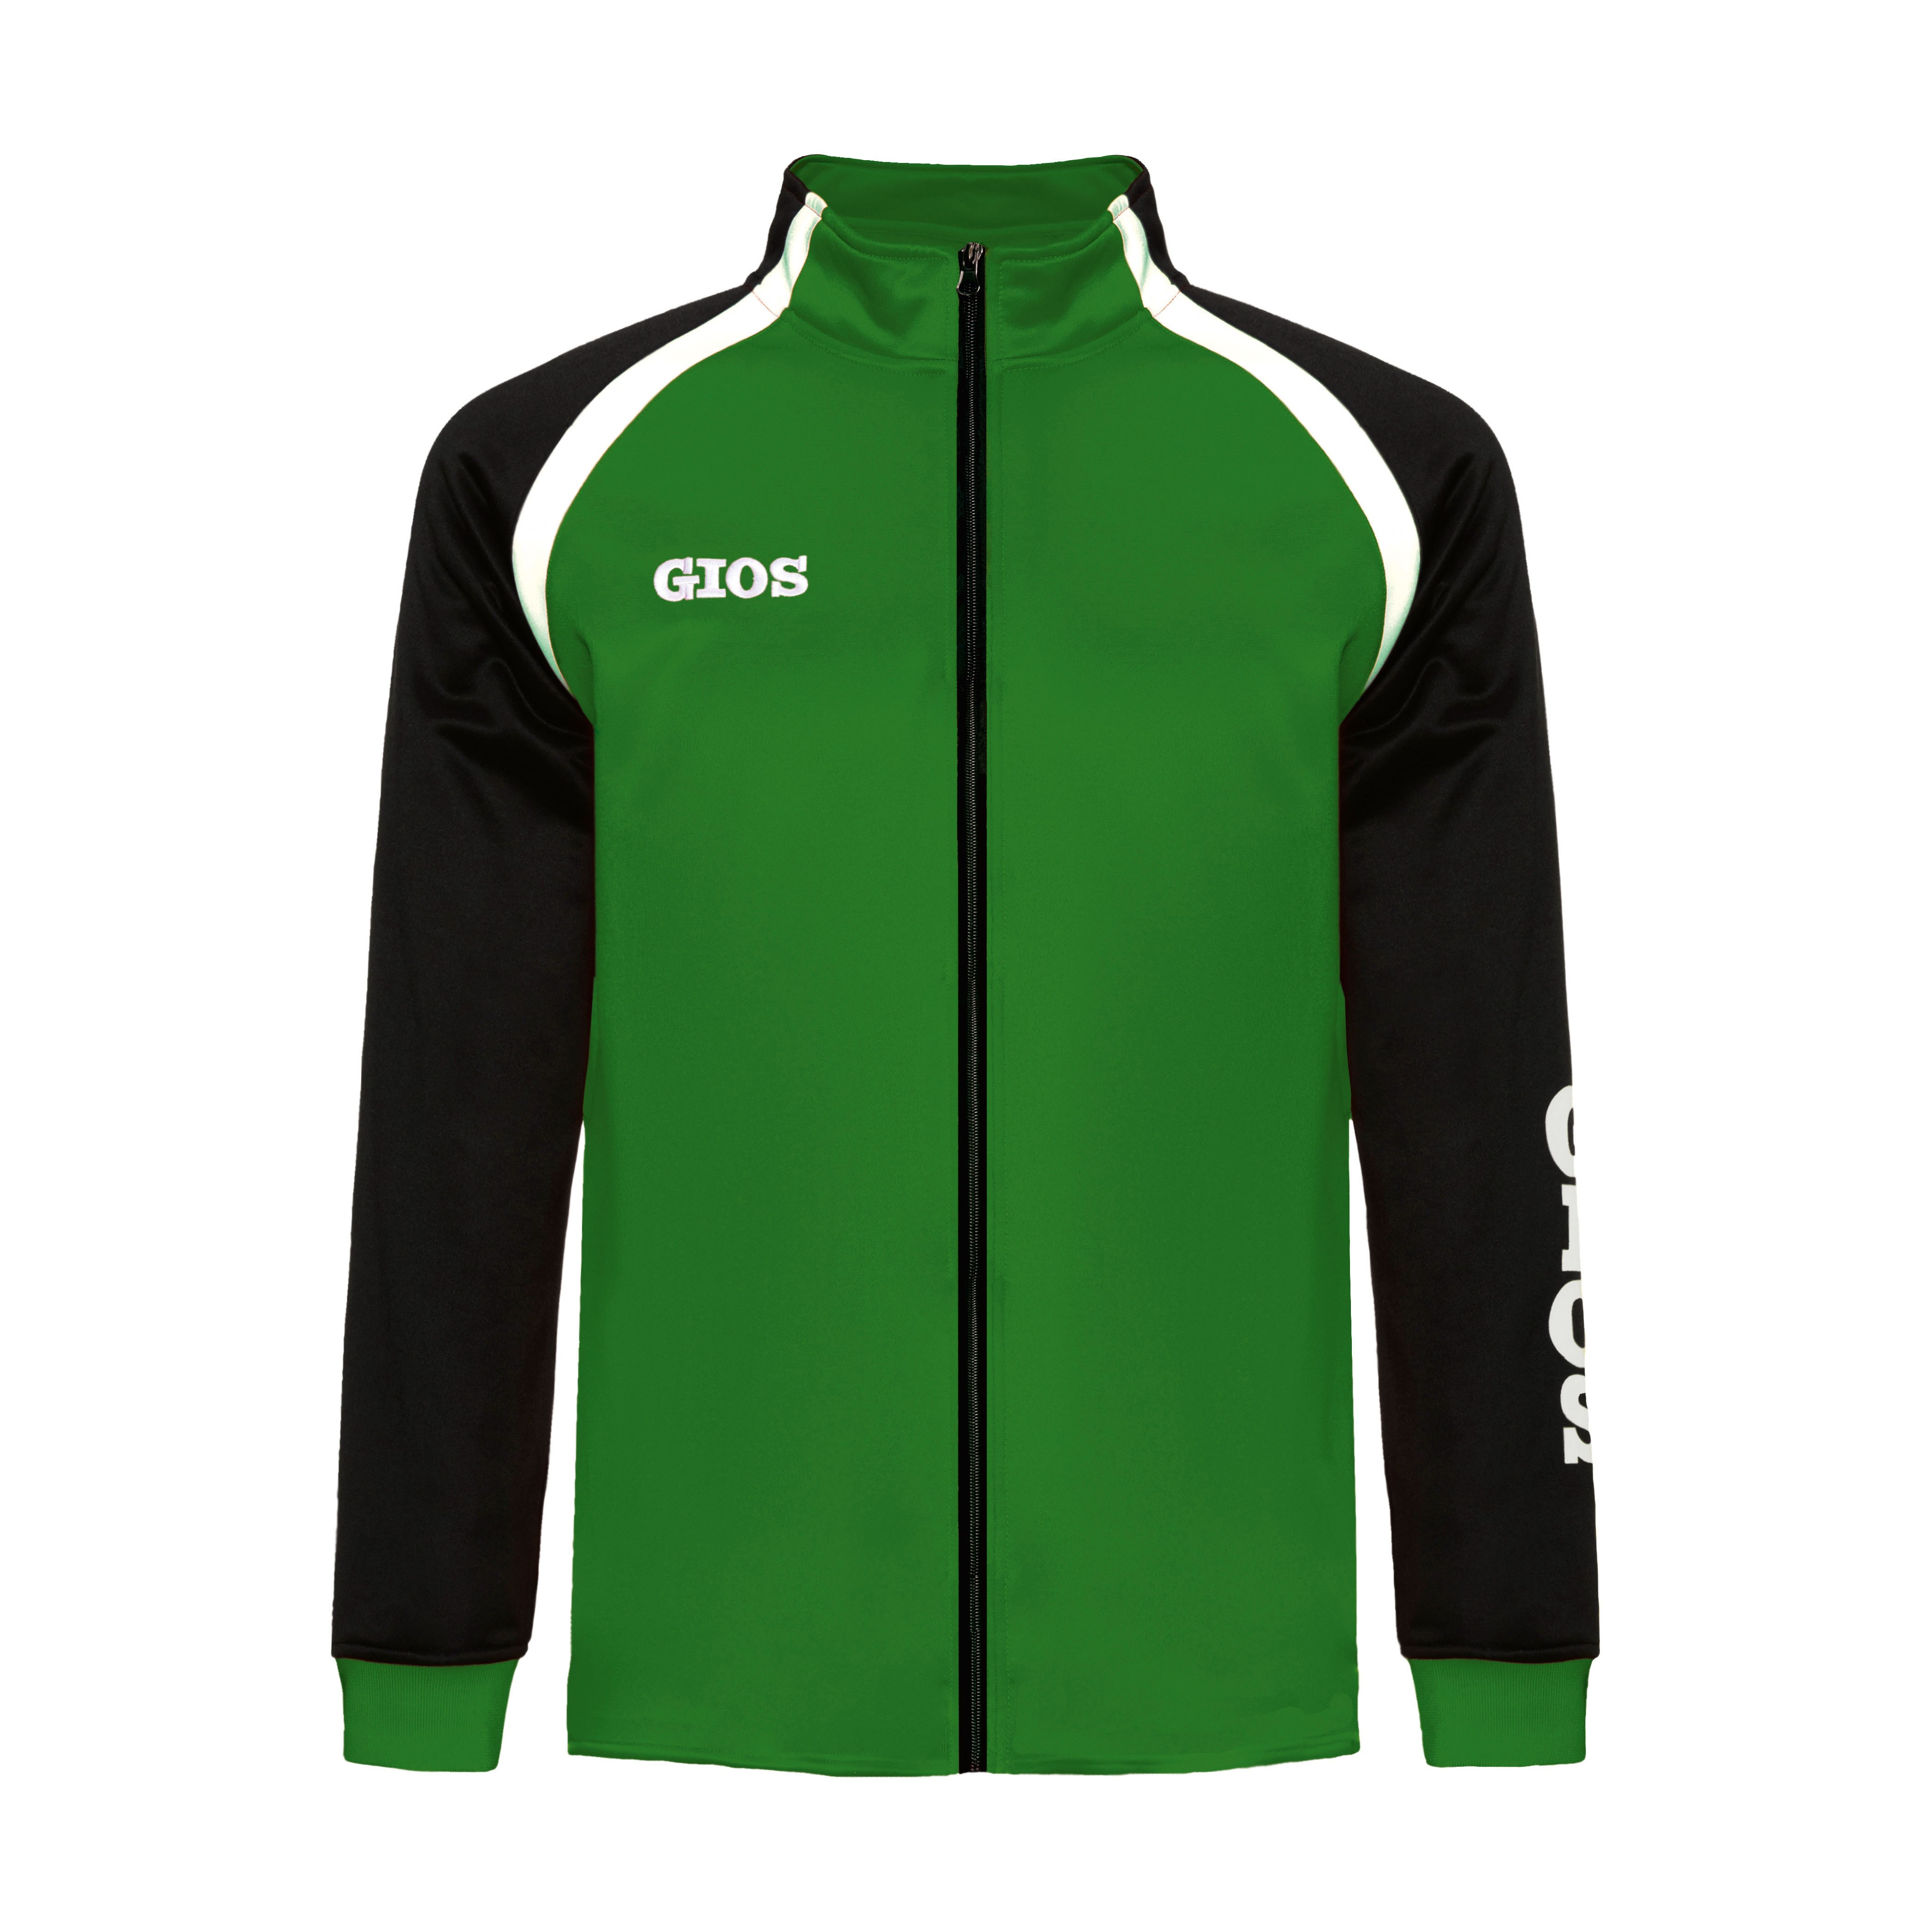 AIRONE TRACKSUIT JACKET / CHAQUETA CHÁNDAL AIRONE GREEN/BLACK